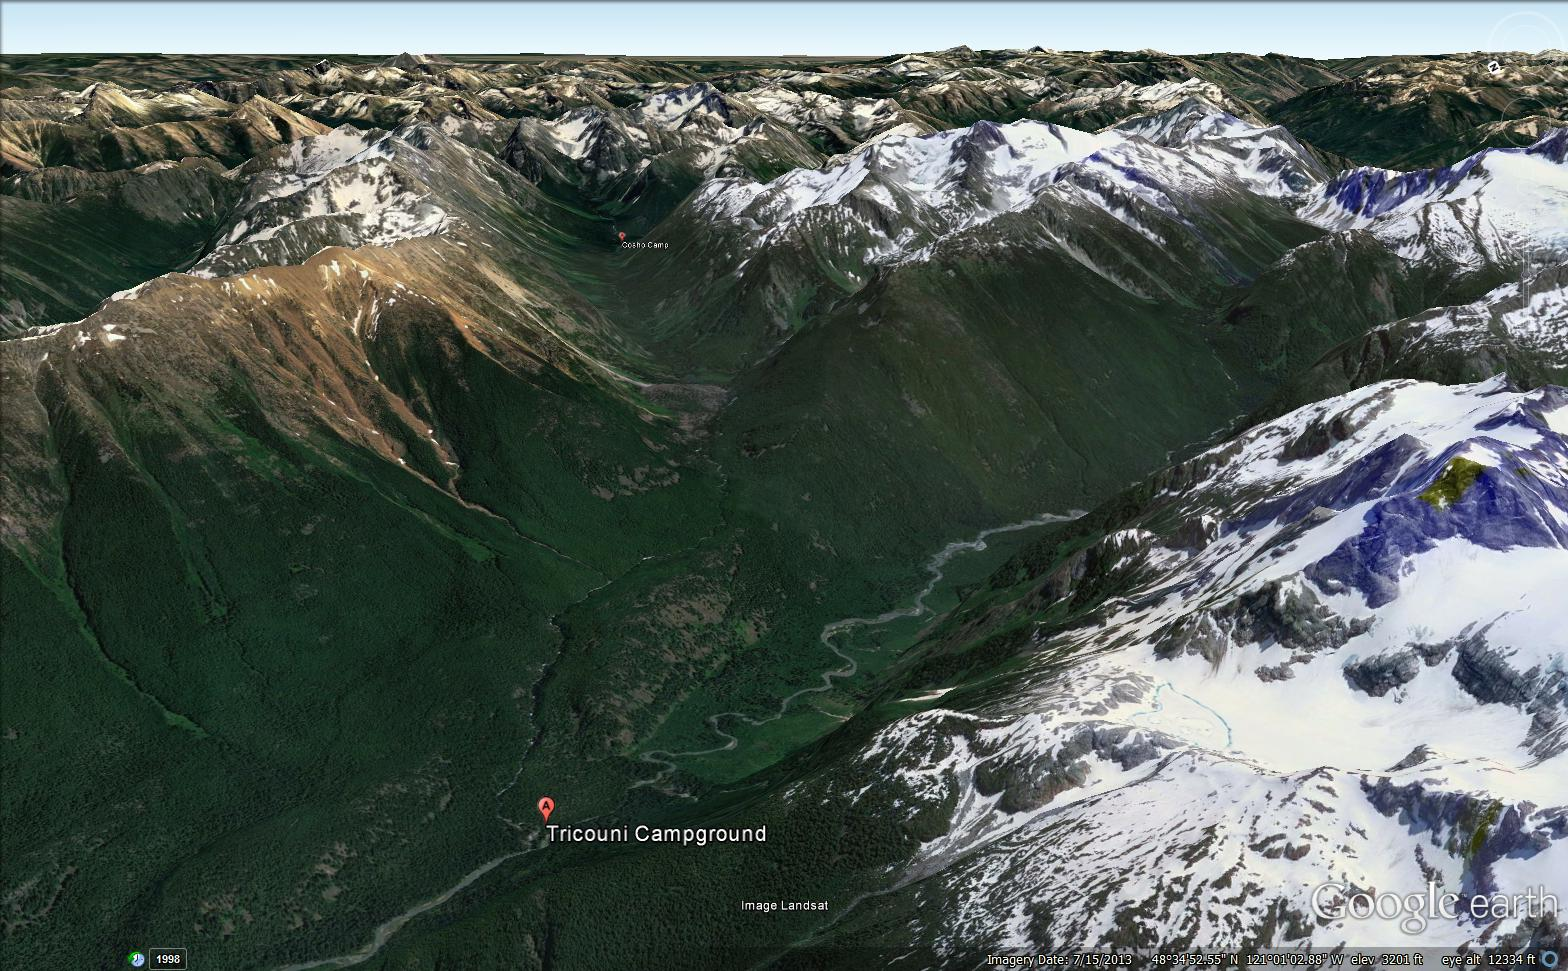 Cosho campground is the tiny red dot in the small valley above Tricouni.